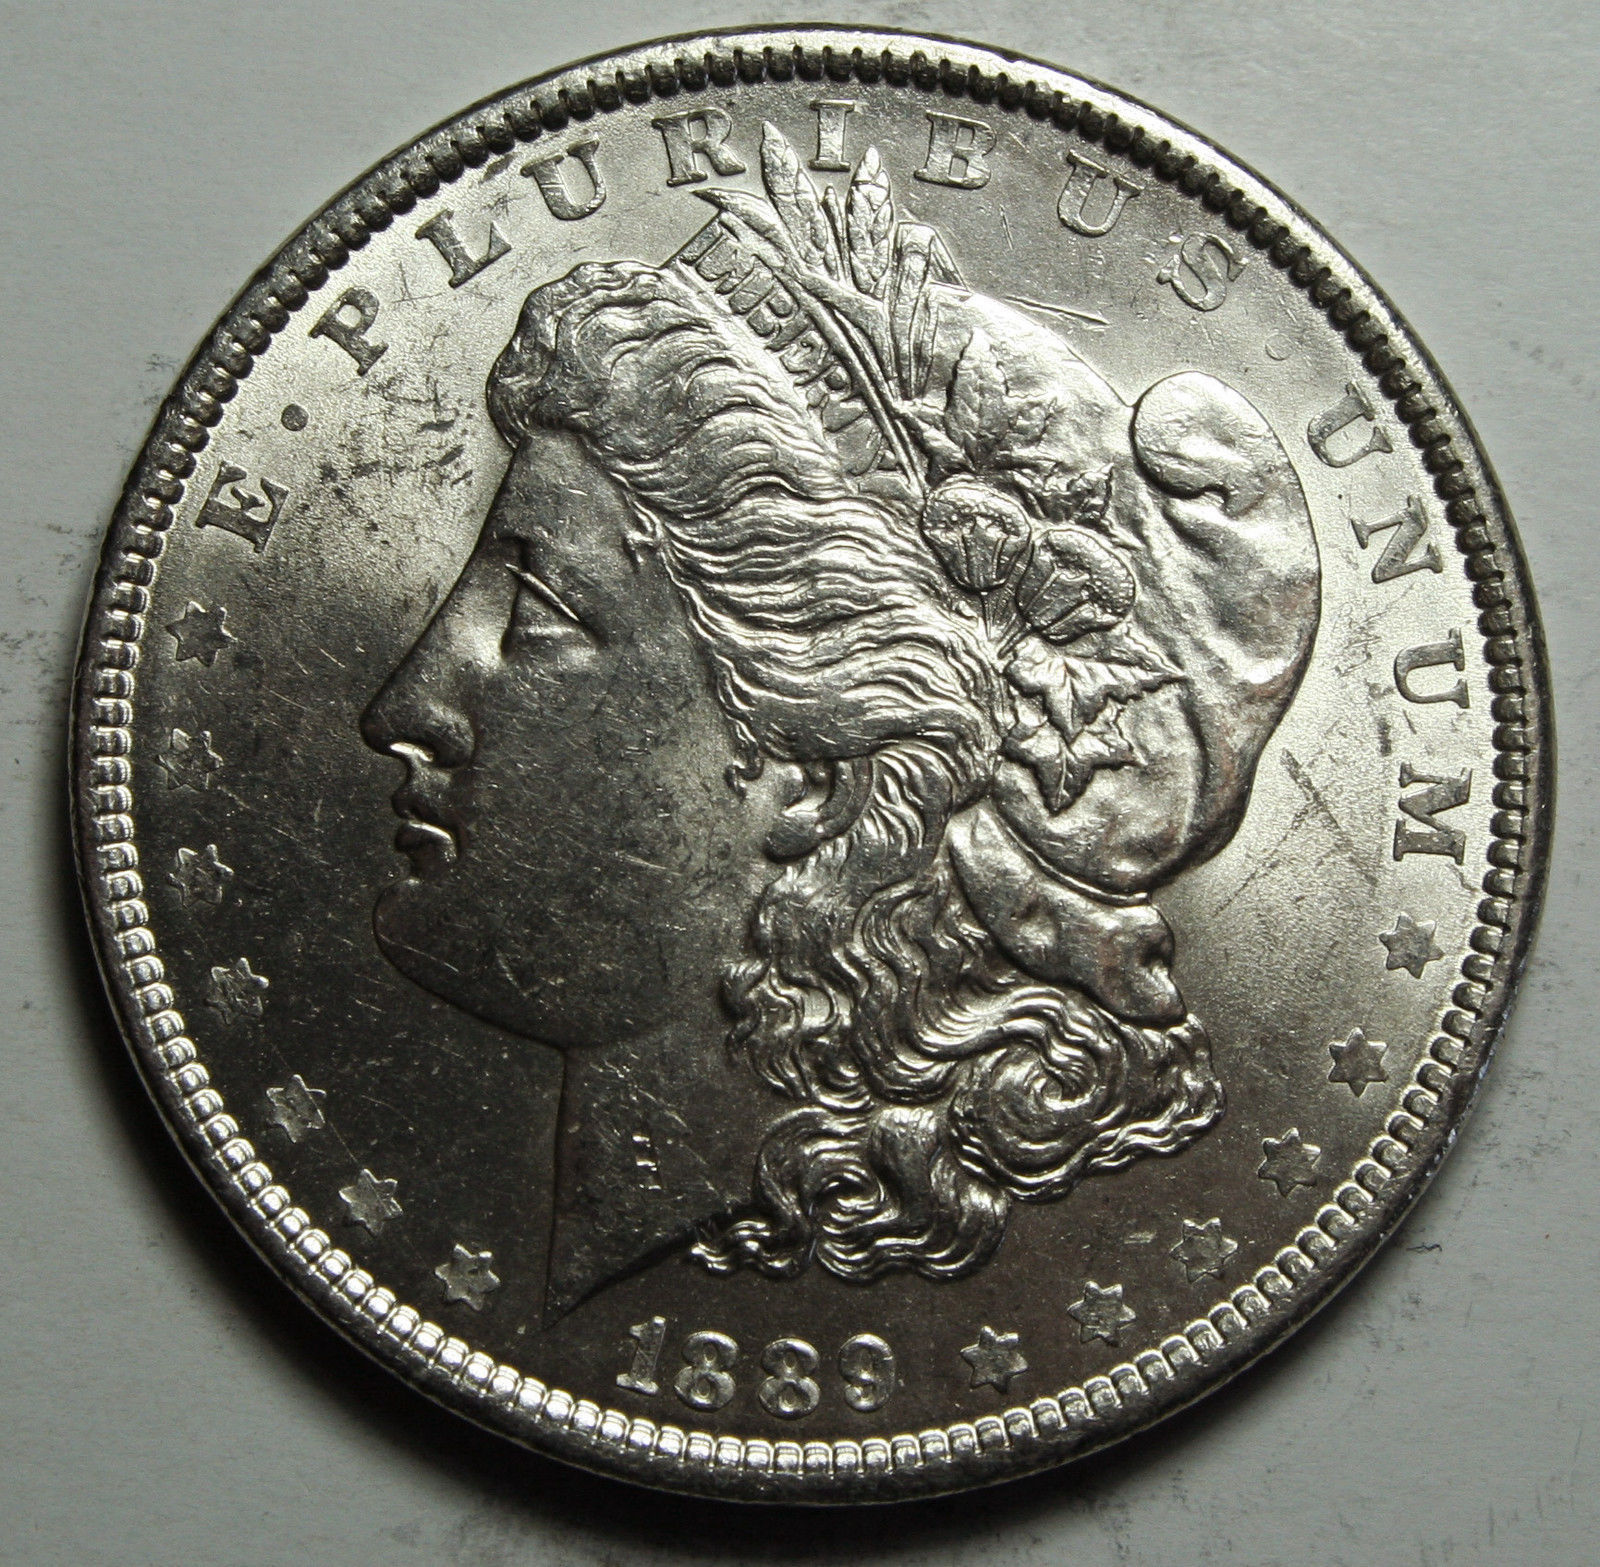 1889 MORGAN SILVER DOLLAR COIN Lot# D 44